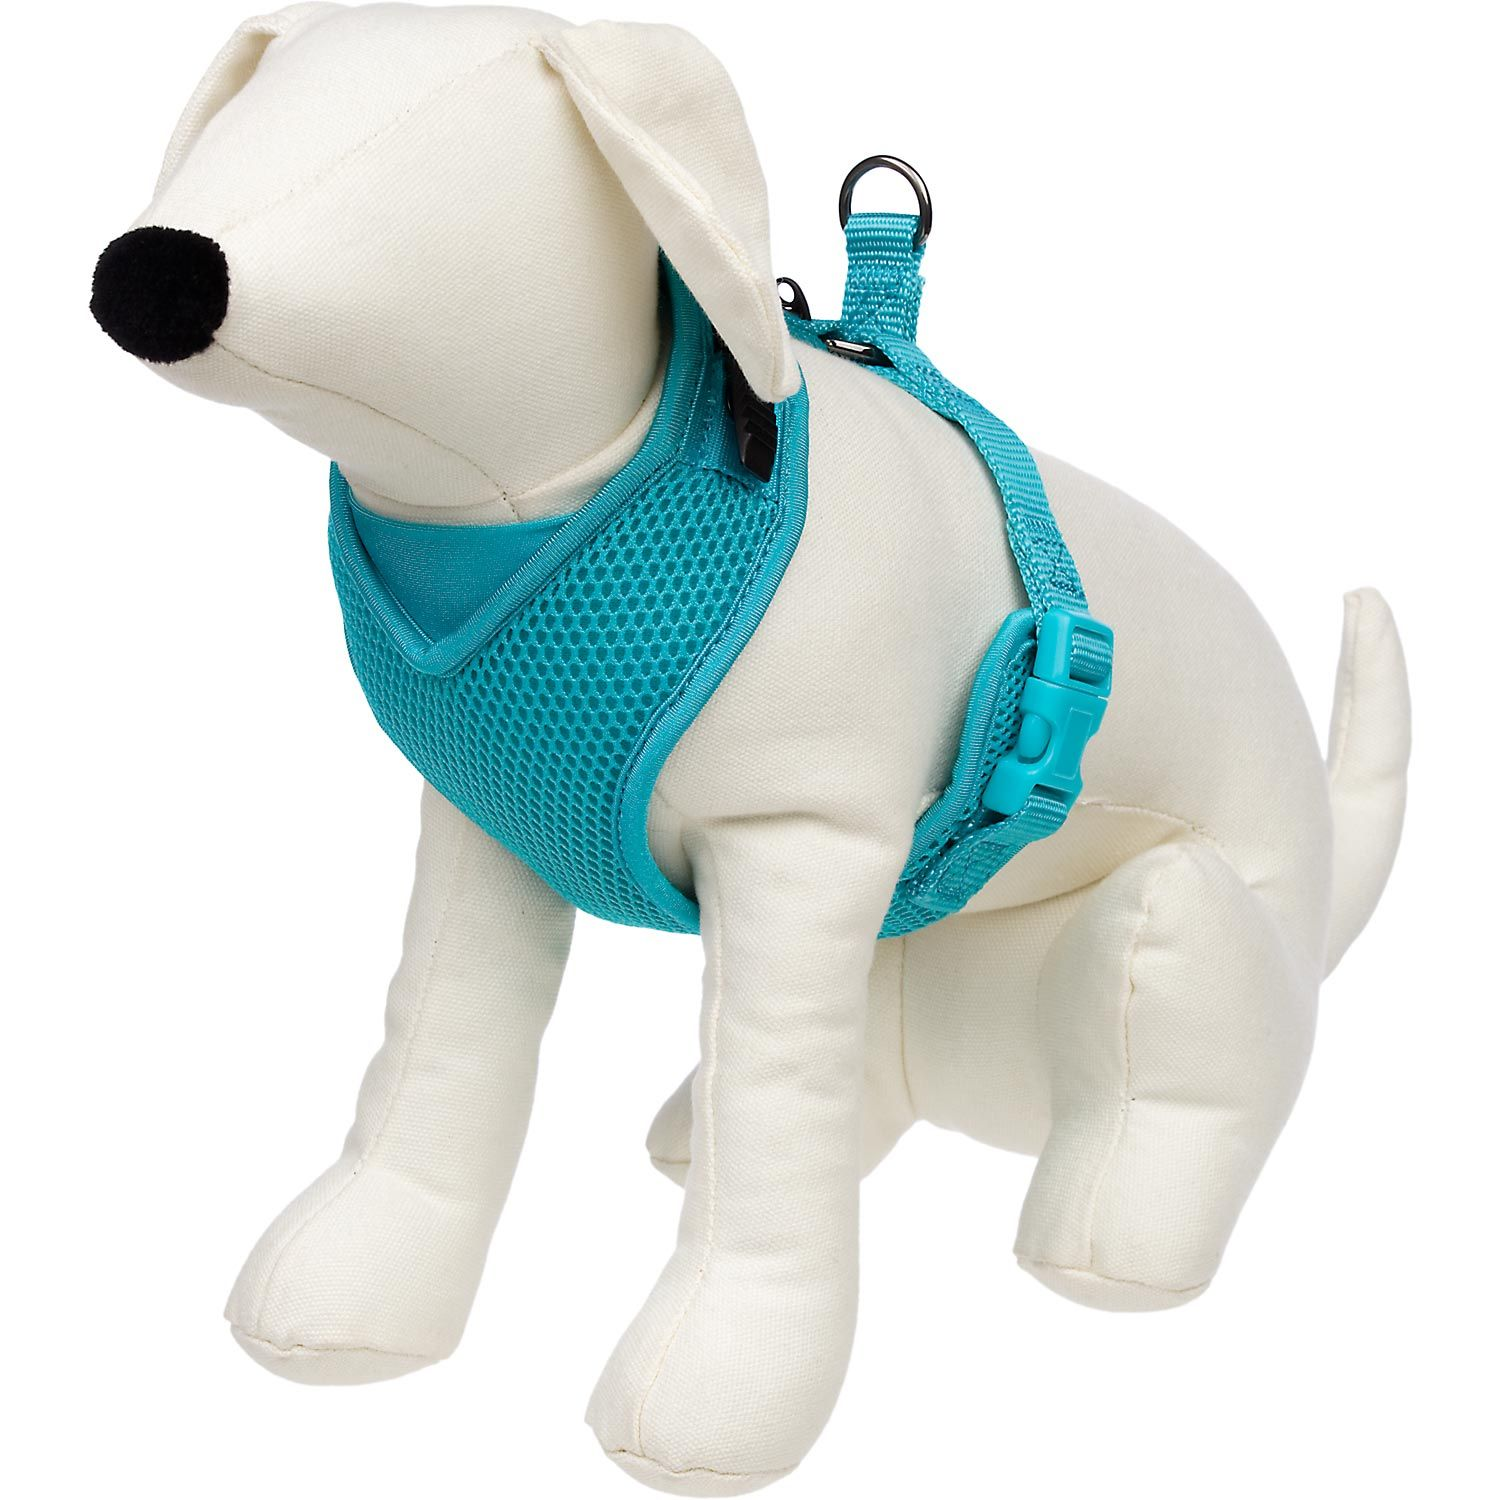 Petco Adjustable Mesh Harness For Dogs In Teal Dog Safety